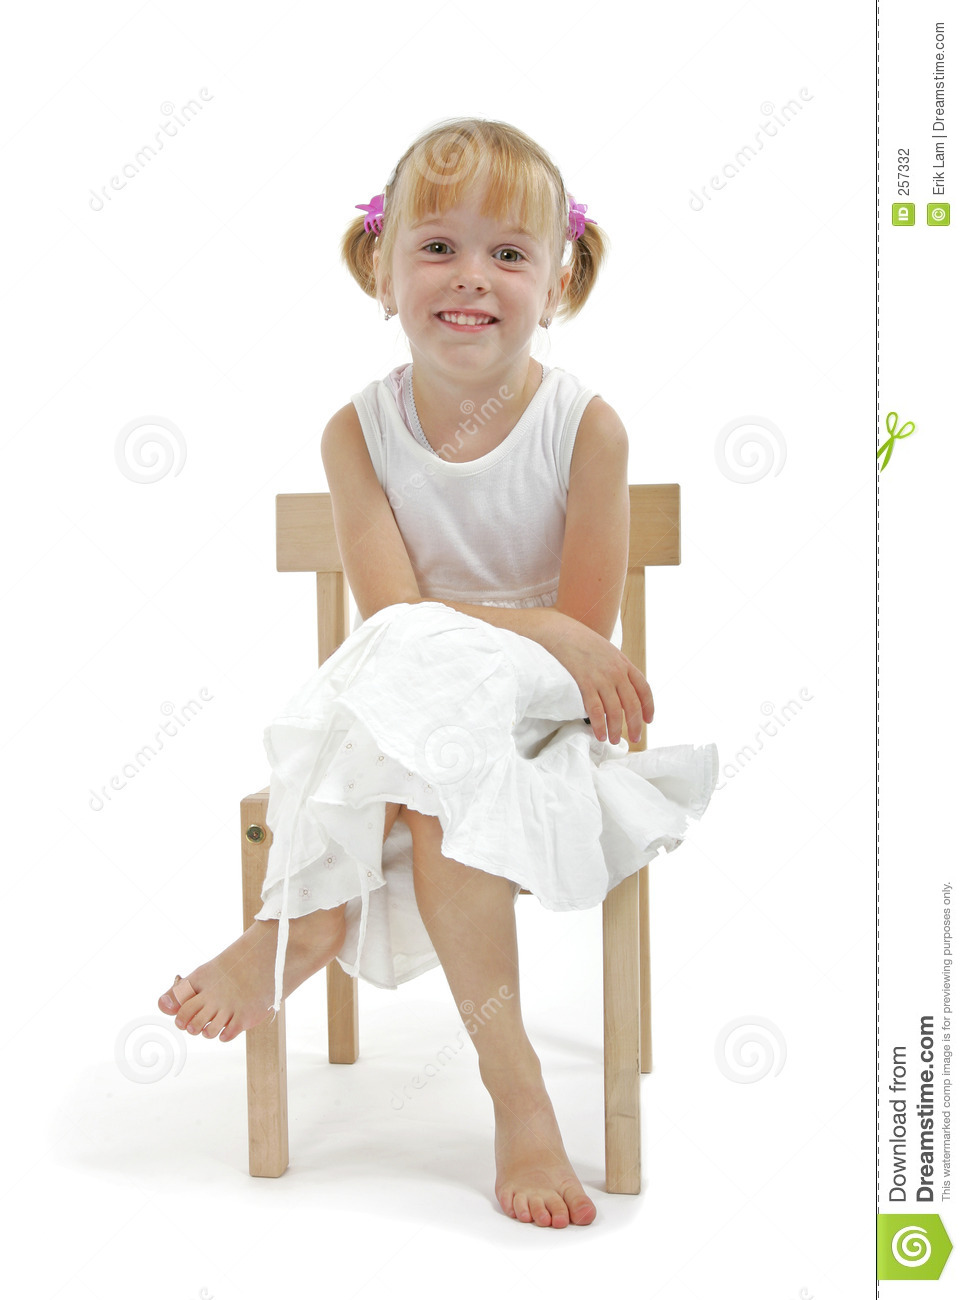 Little Girl In White Dress Sitting On Wooden Chair Stock